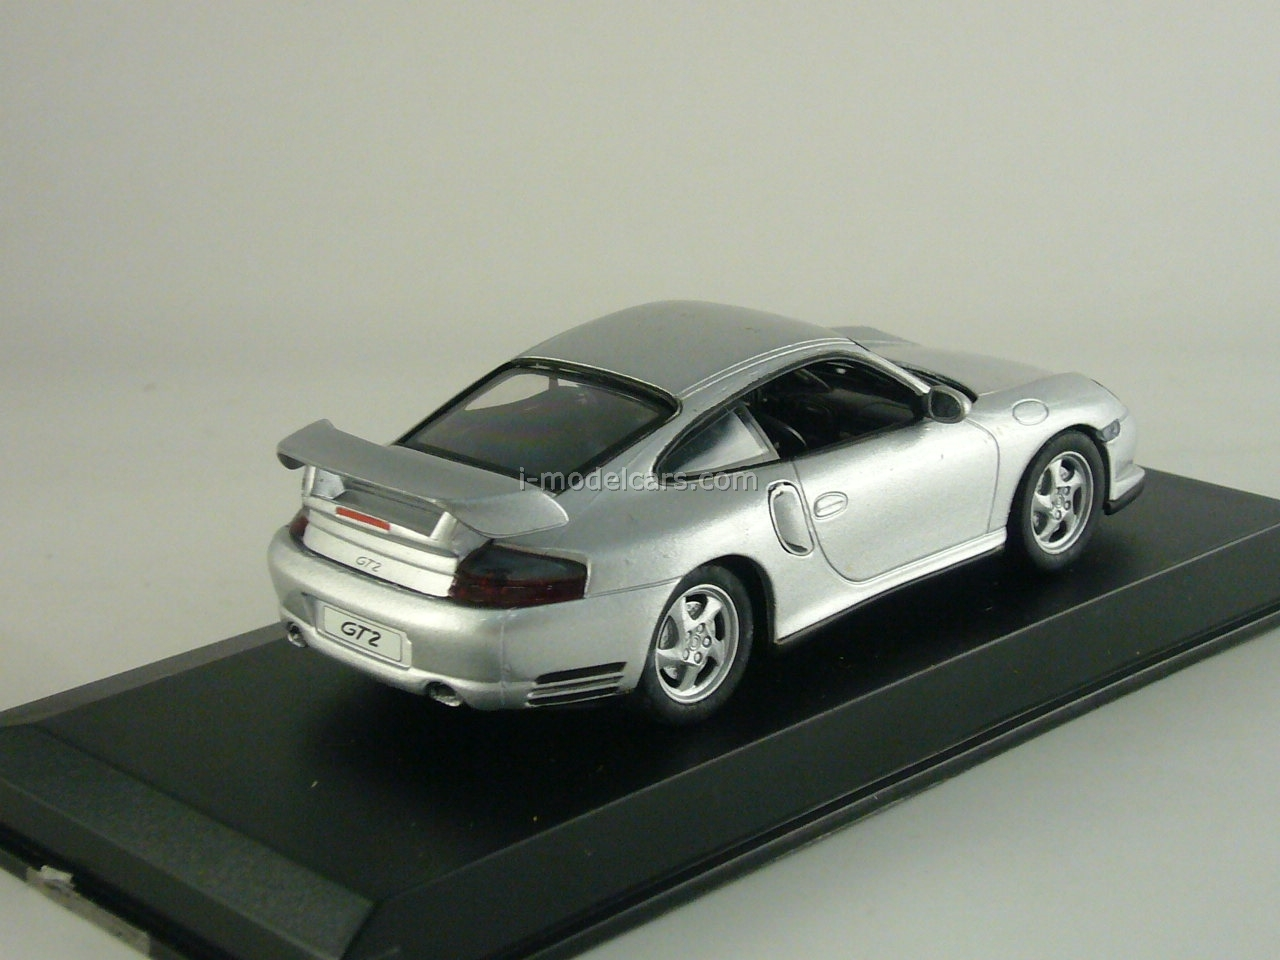 model cars porsche 911 gt2 2000 high speed 1 43. Black Bedroom Furniture Sets. Home Design Ideas